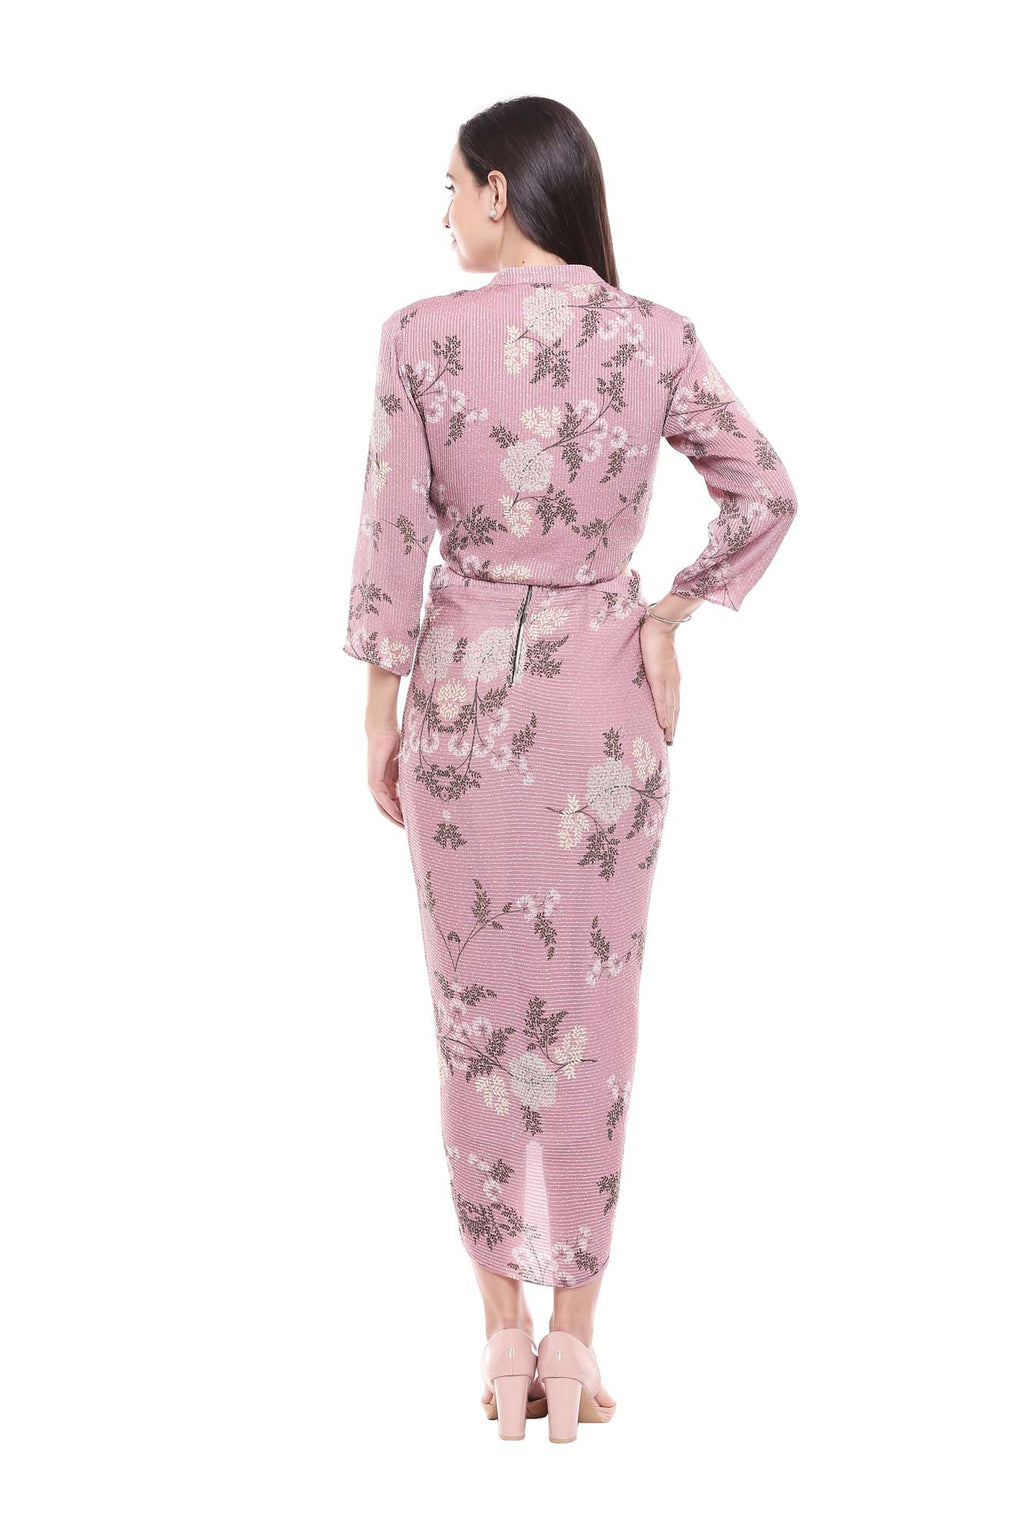 Pink Floral Sequence Printed Drape Dress With Jacket - Riviera Closet